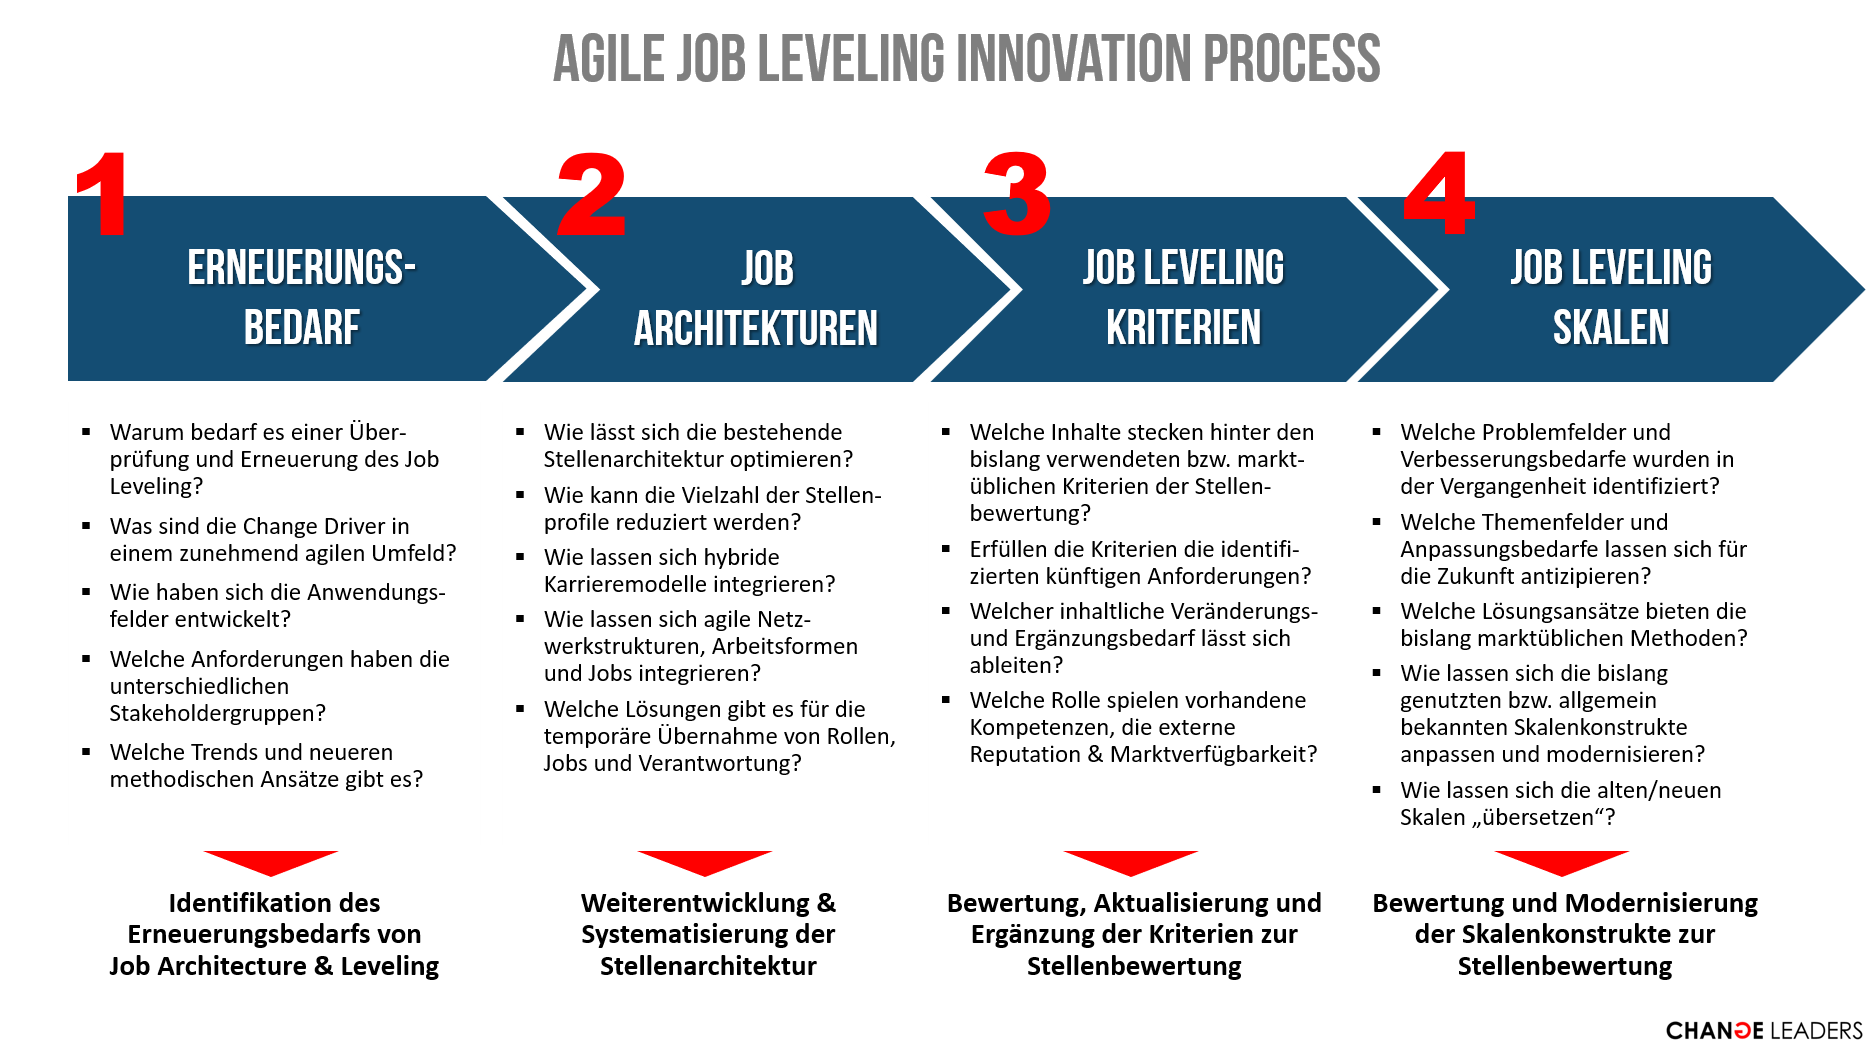 agile-job-leveling-innovation-process_1